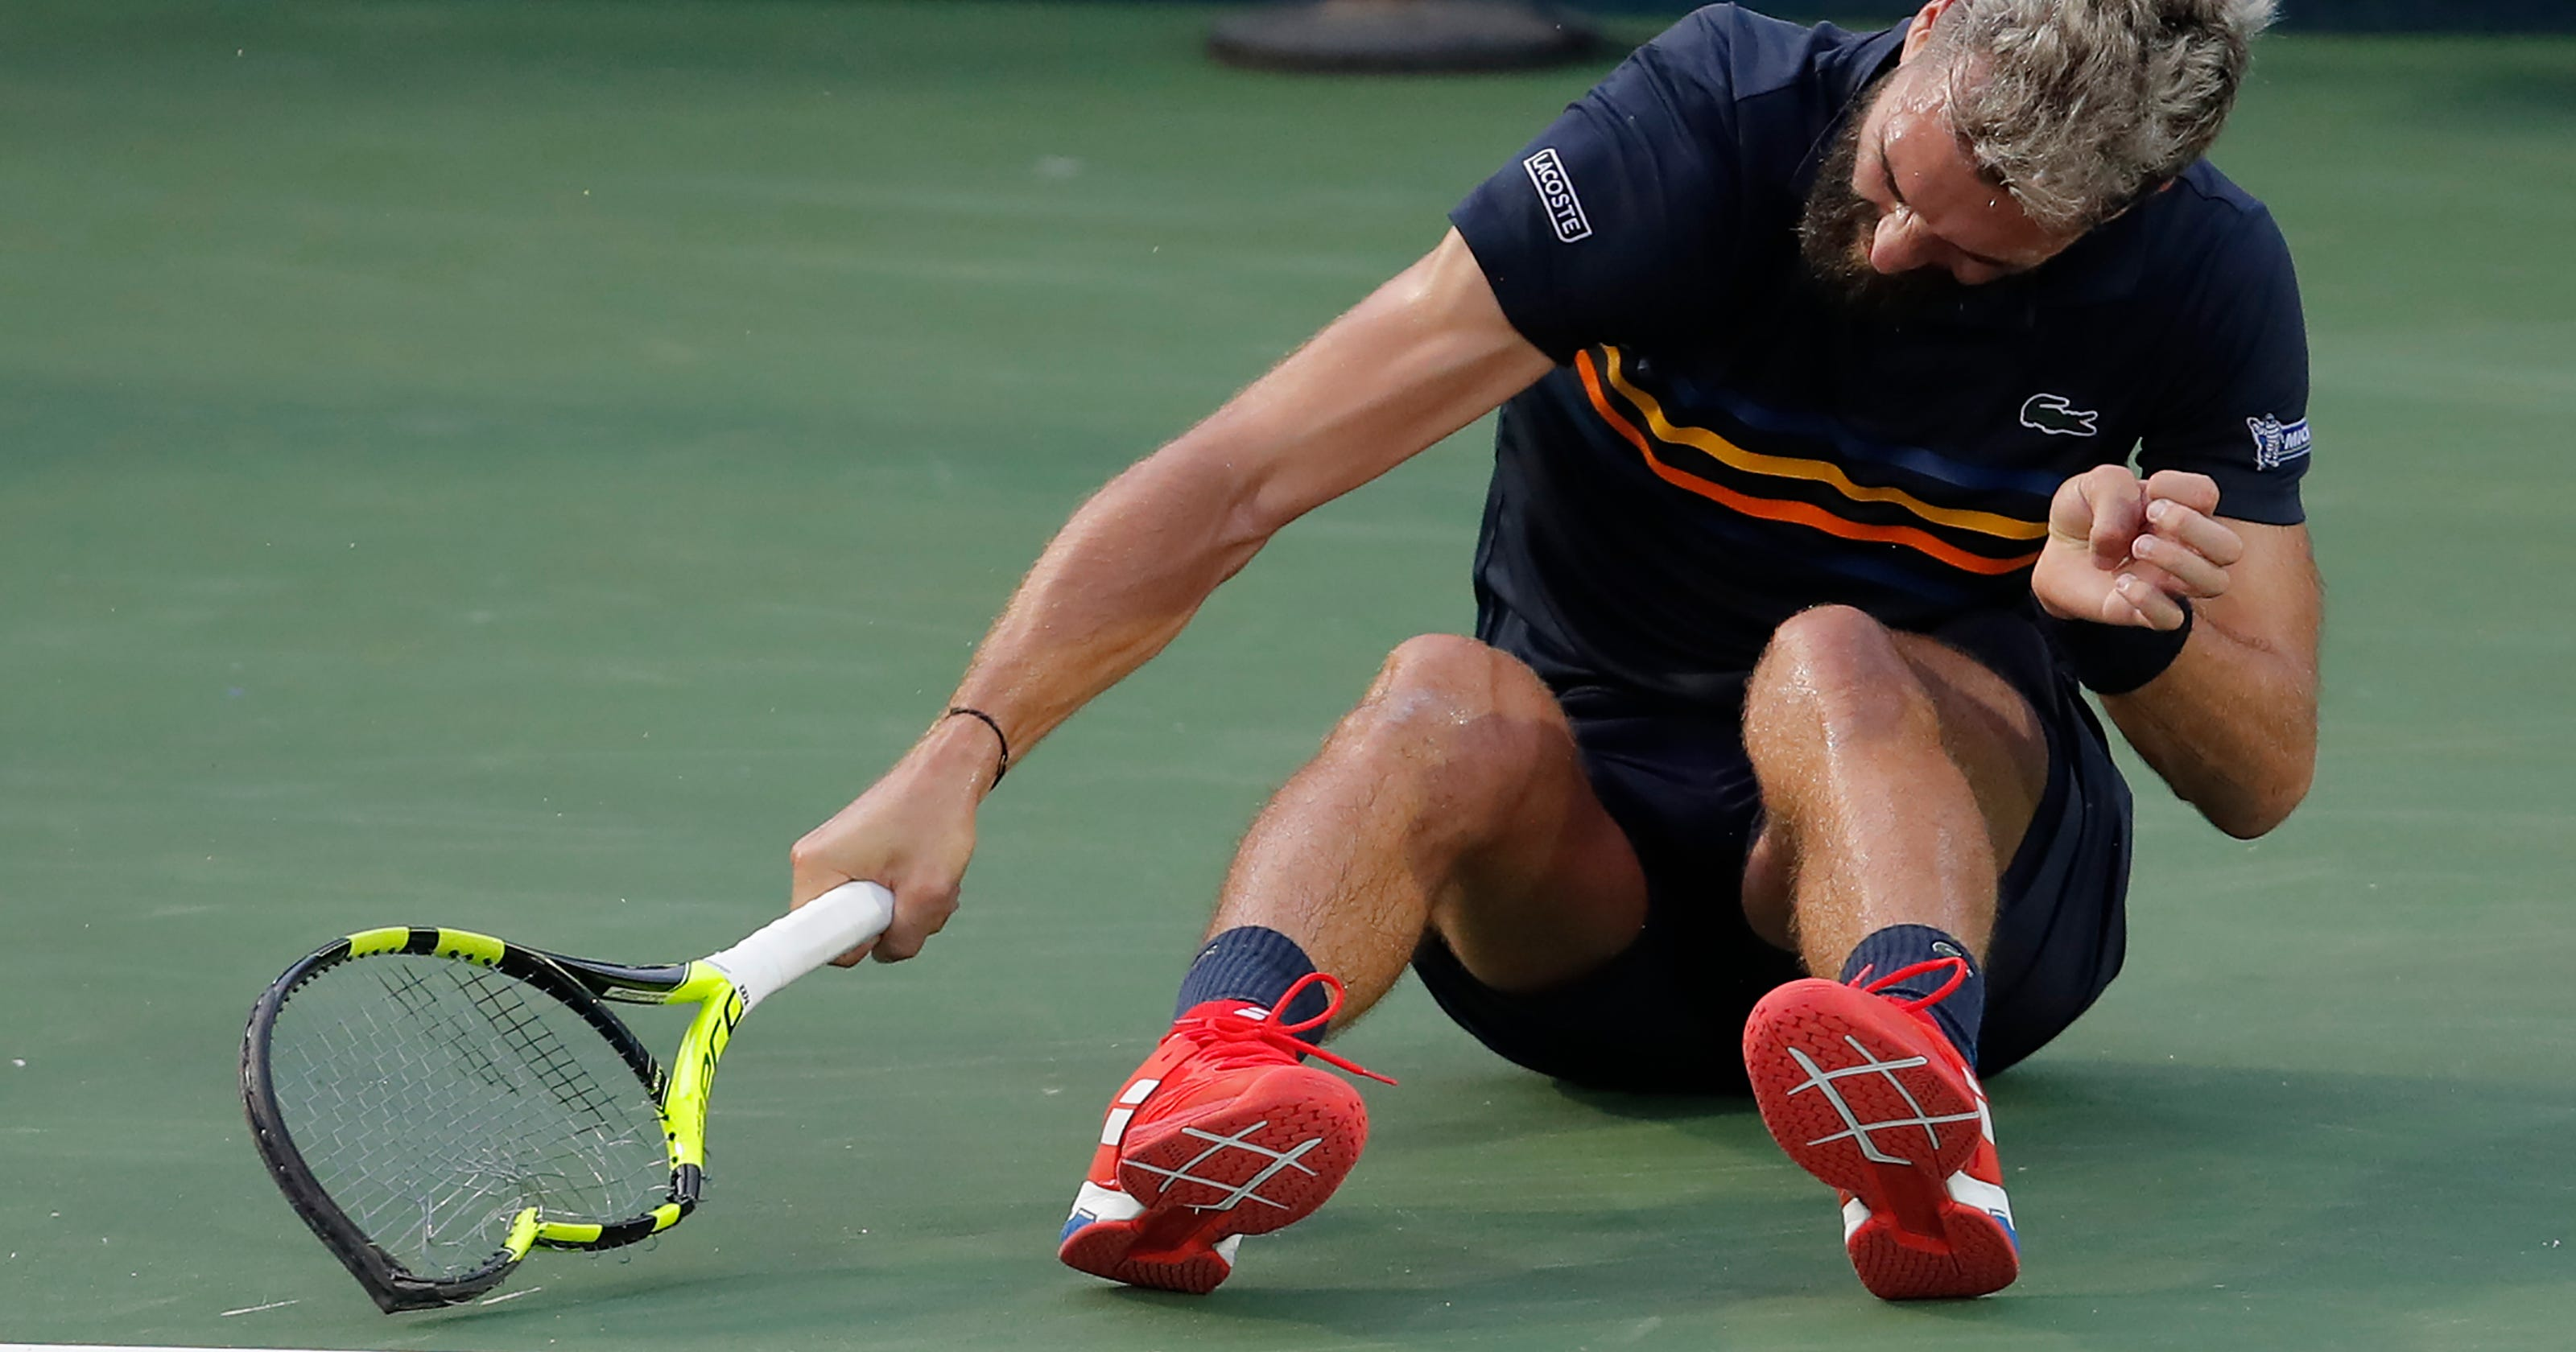 French tennis player Benoit Paire unleashes racket-breaking tantrum at Citi  Open 58209bfd49aab